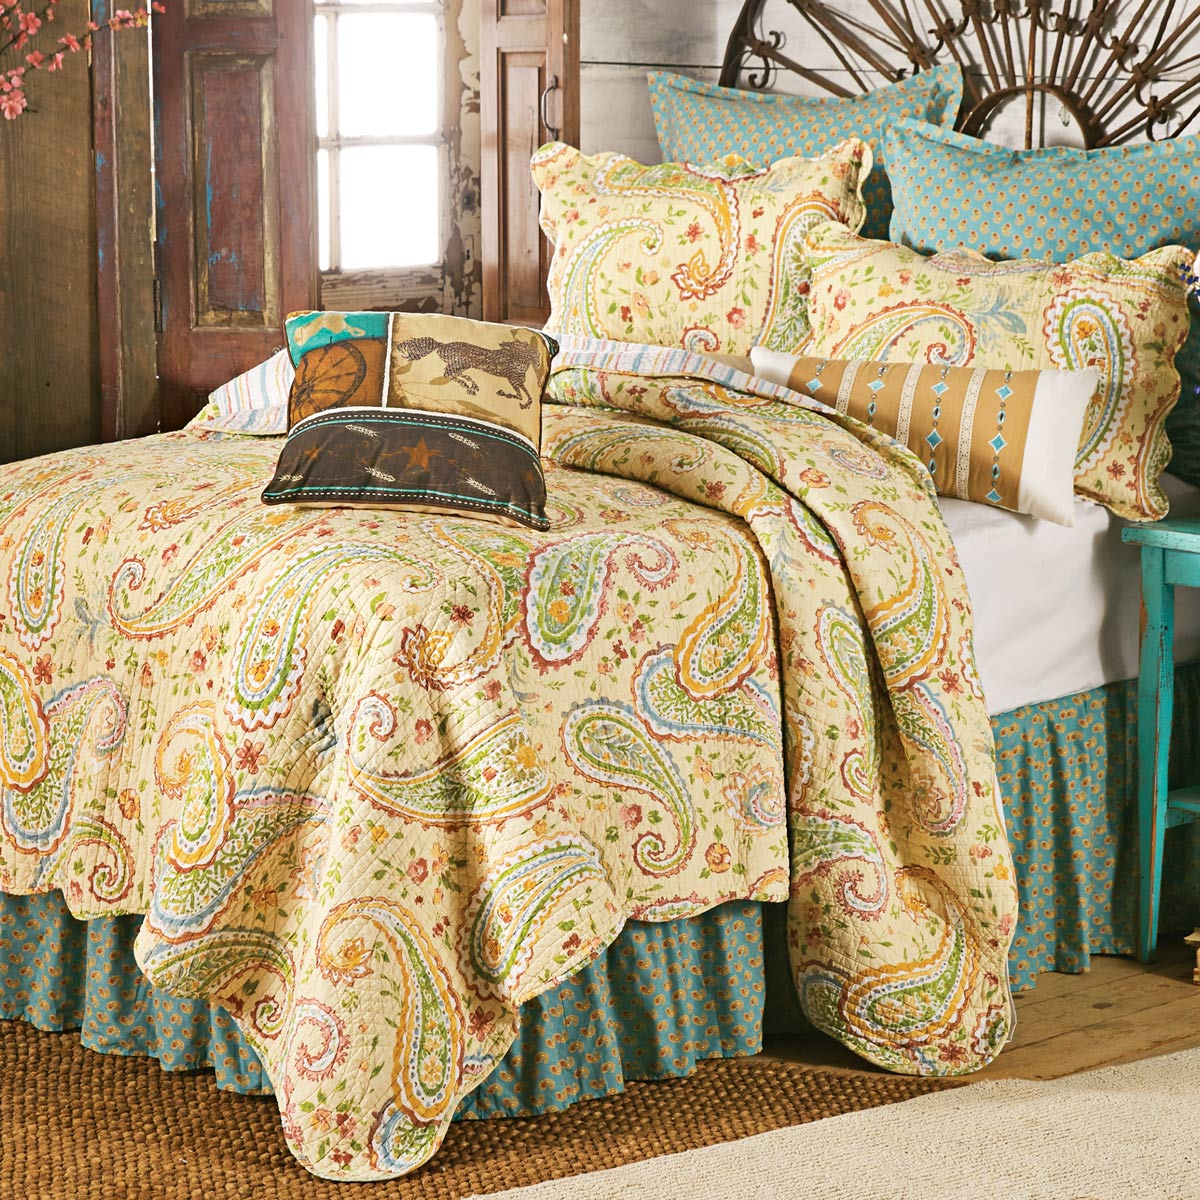 Black Forest Decor Wildflower paisley quilt - full/queen